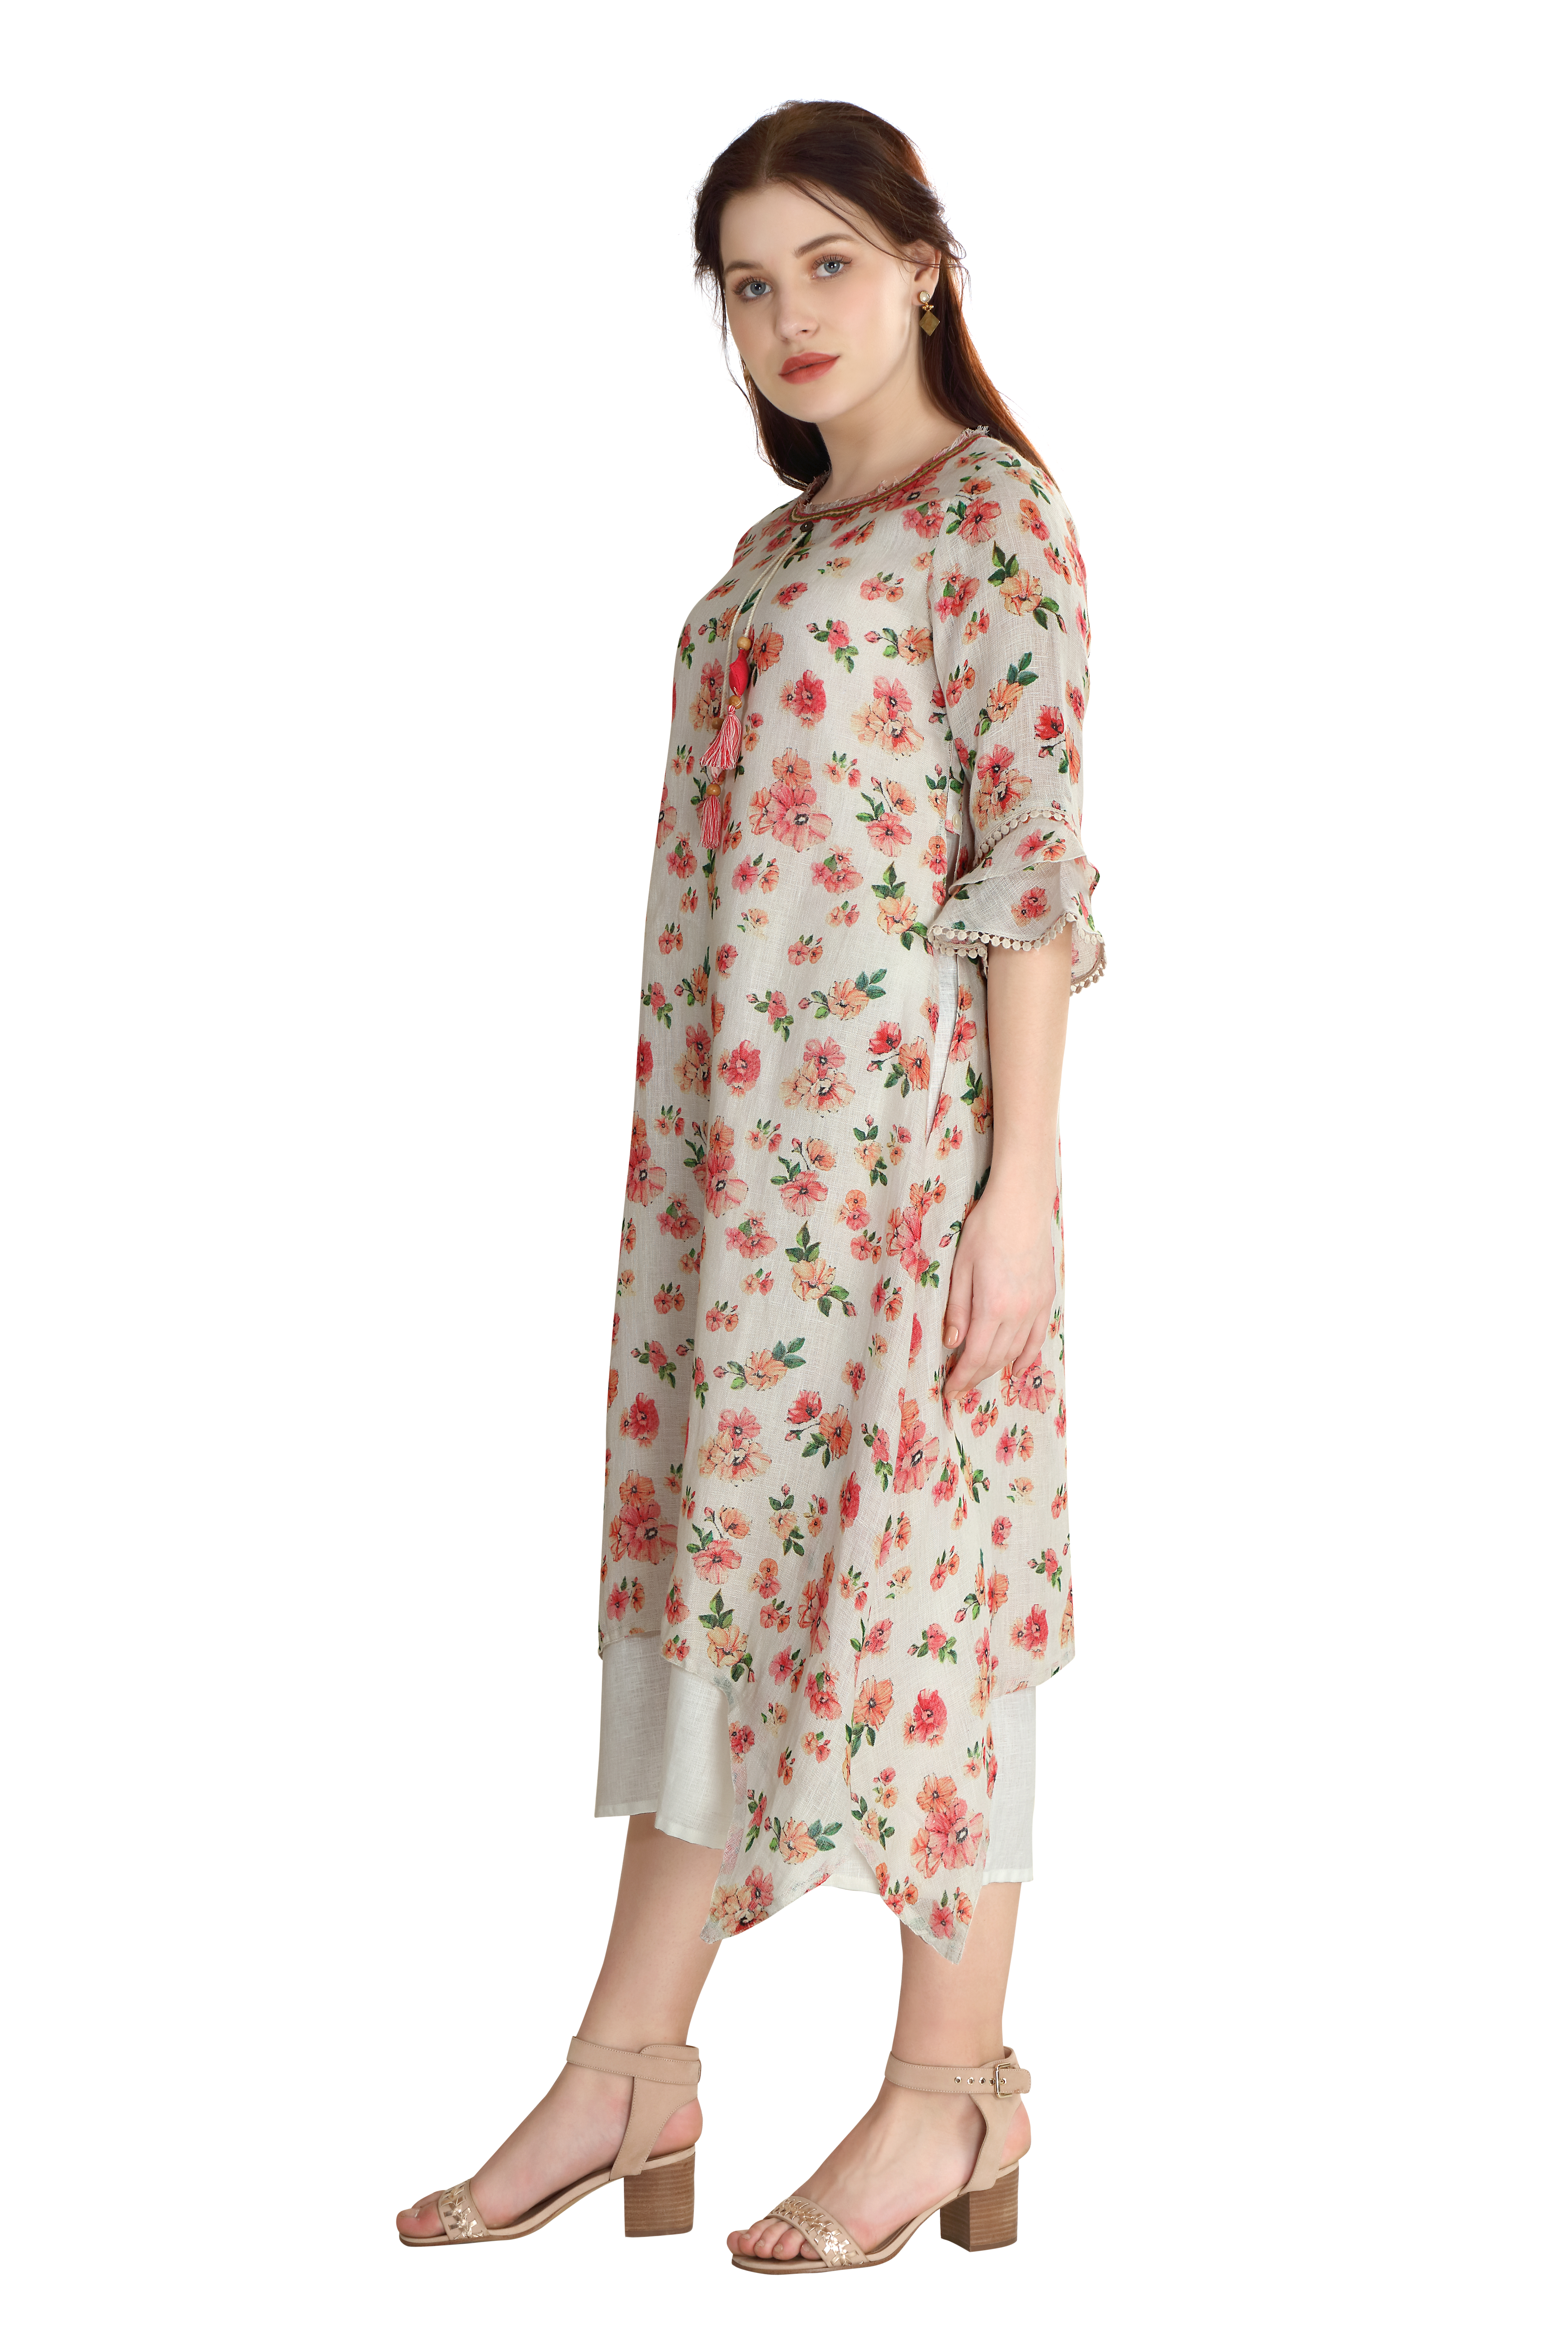 202104 Pink Ditsy Printed Double Layered Linen Dress (S,Pink)